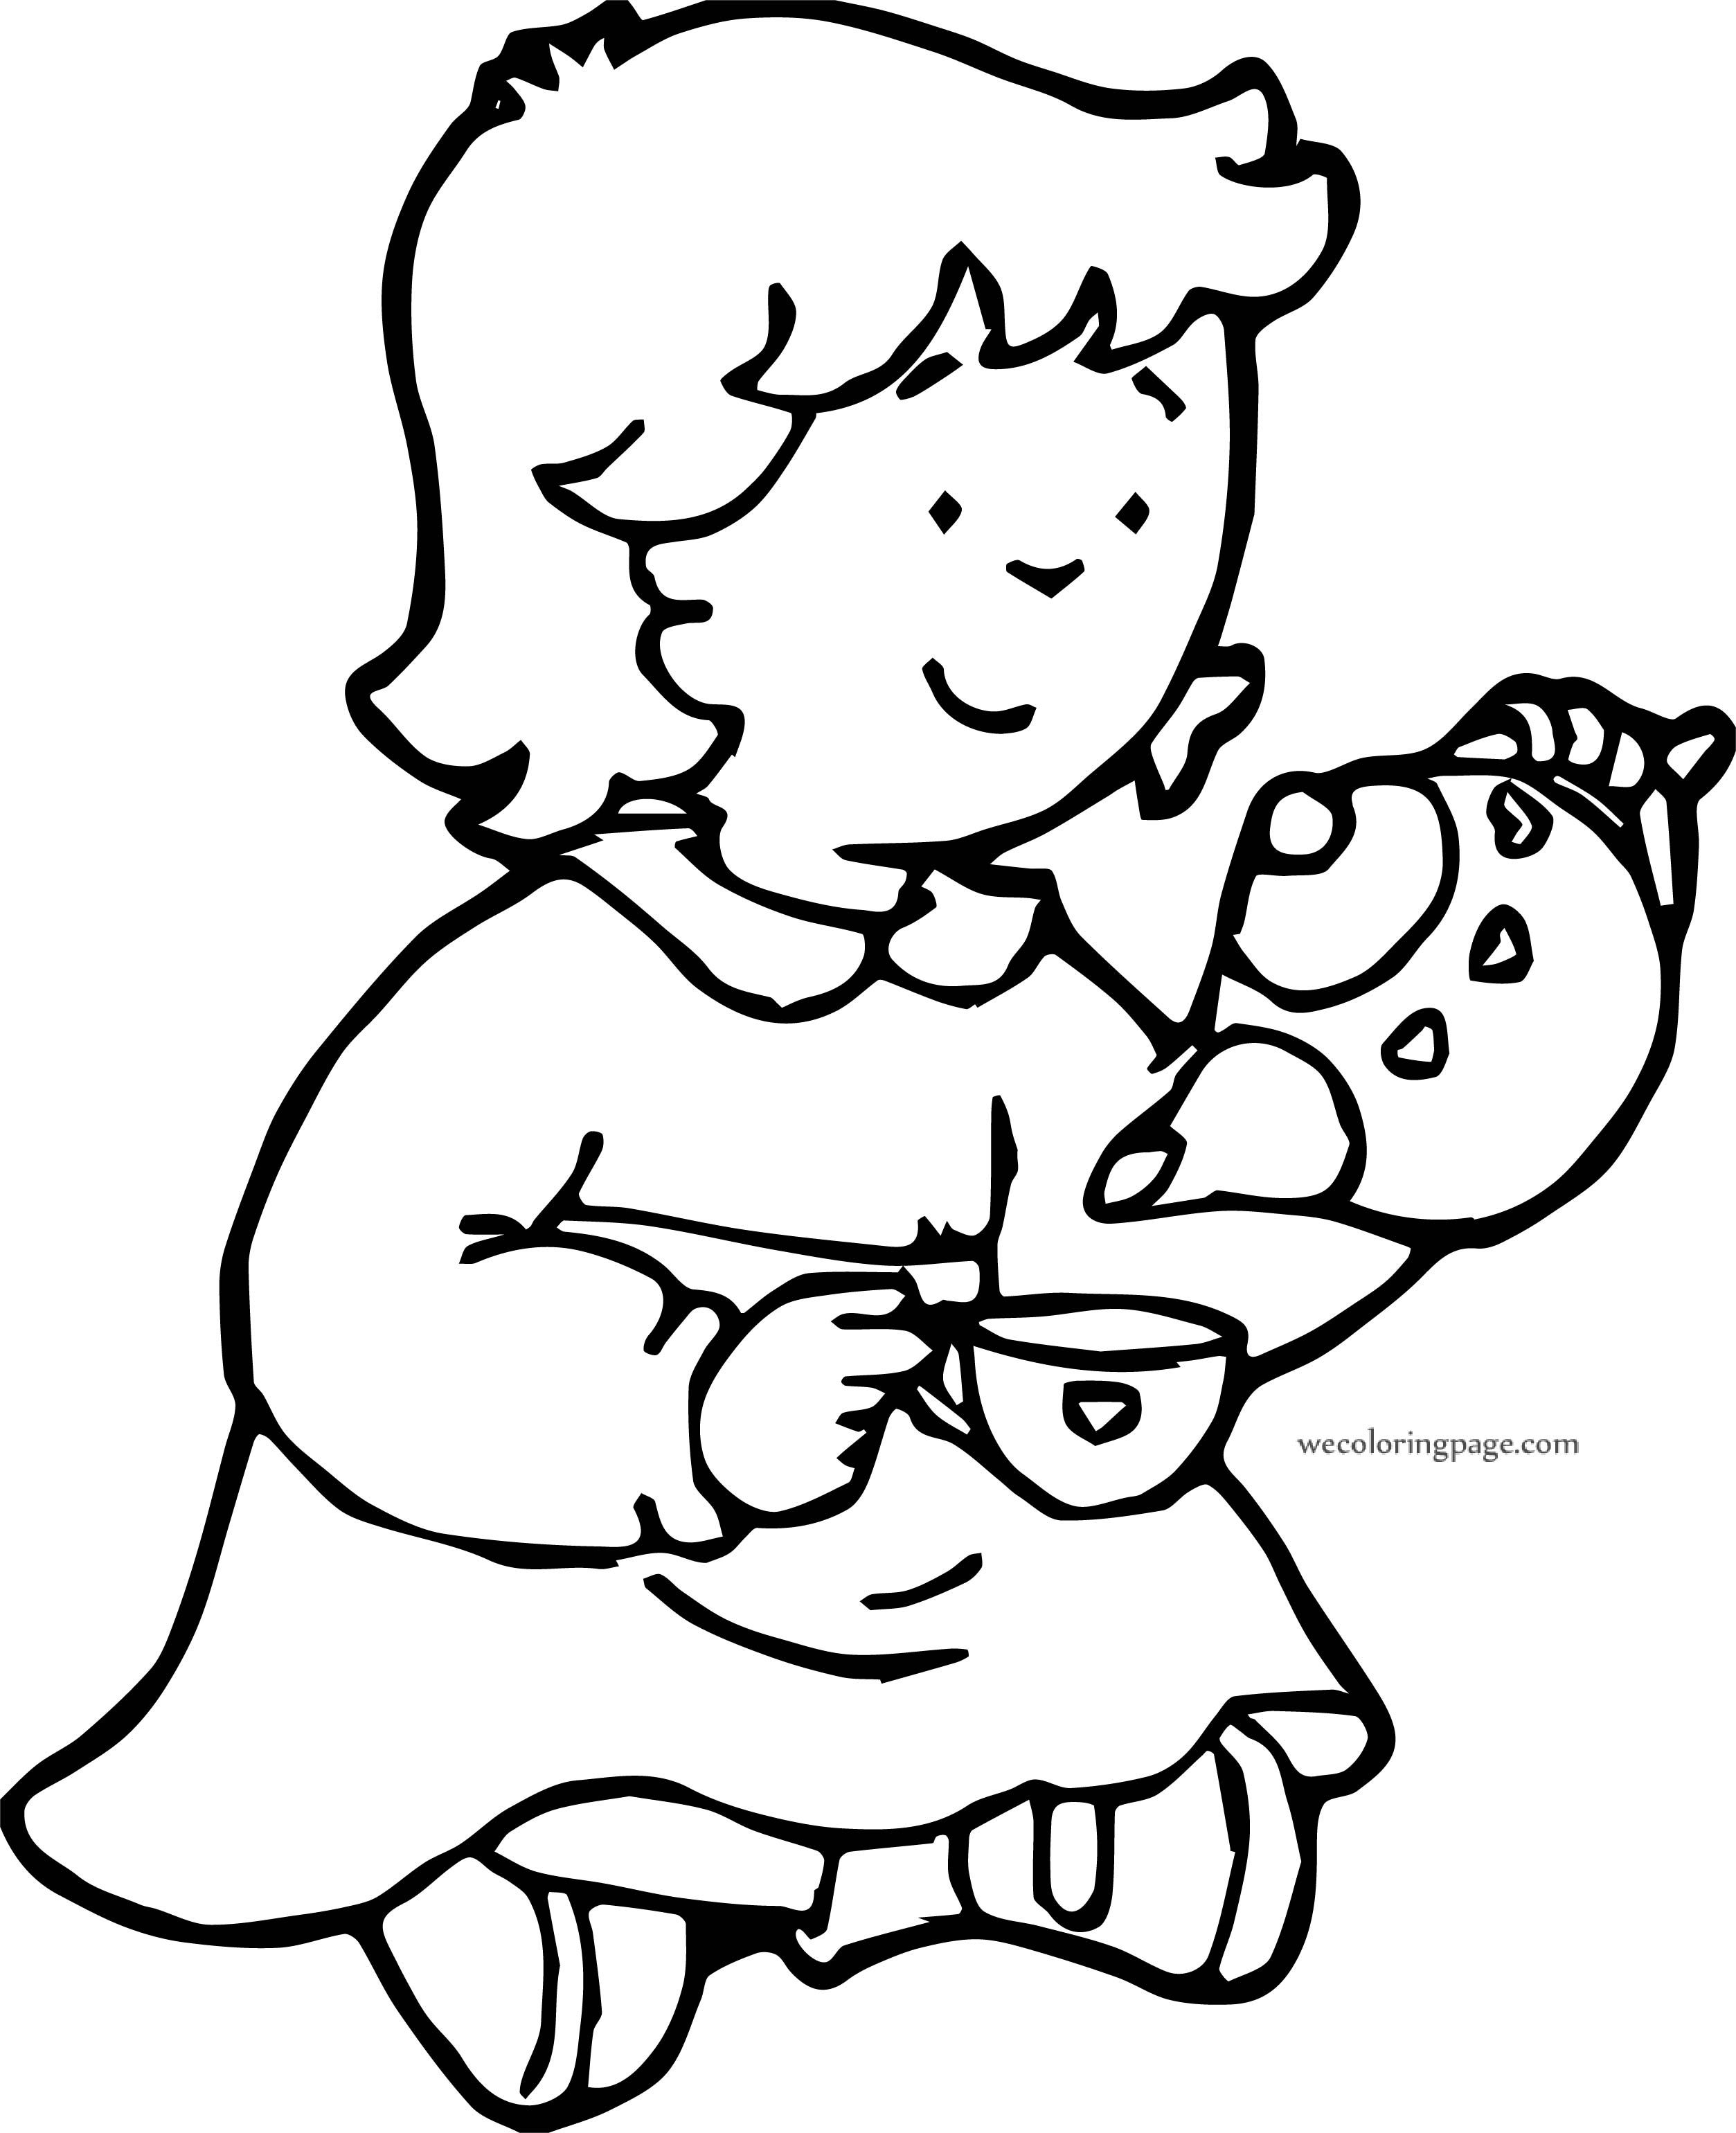 Pin By Wecoloringpage Coloring Pages On Wecoloringpage Coloring Pages Disney Coloring Pages Coloring Books